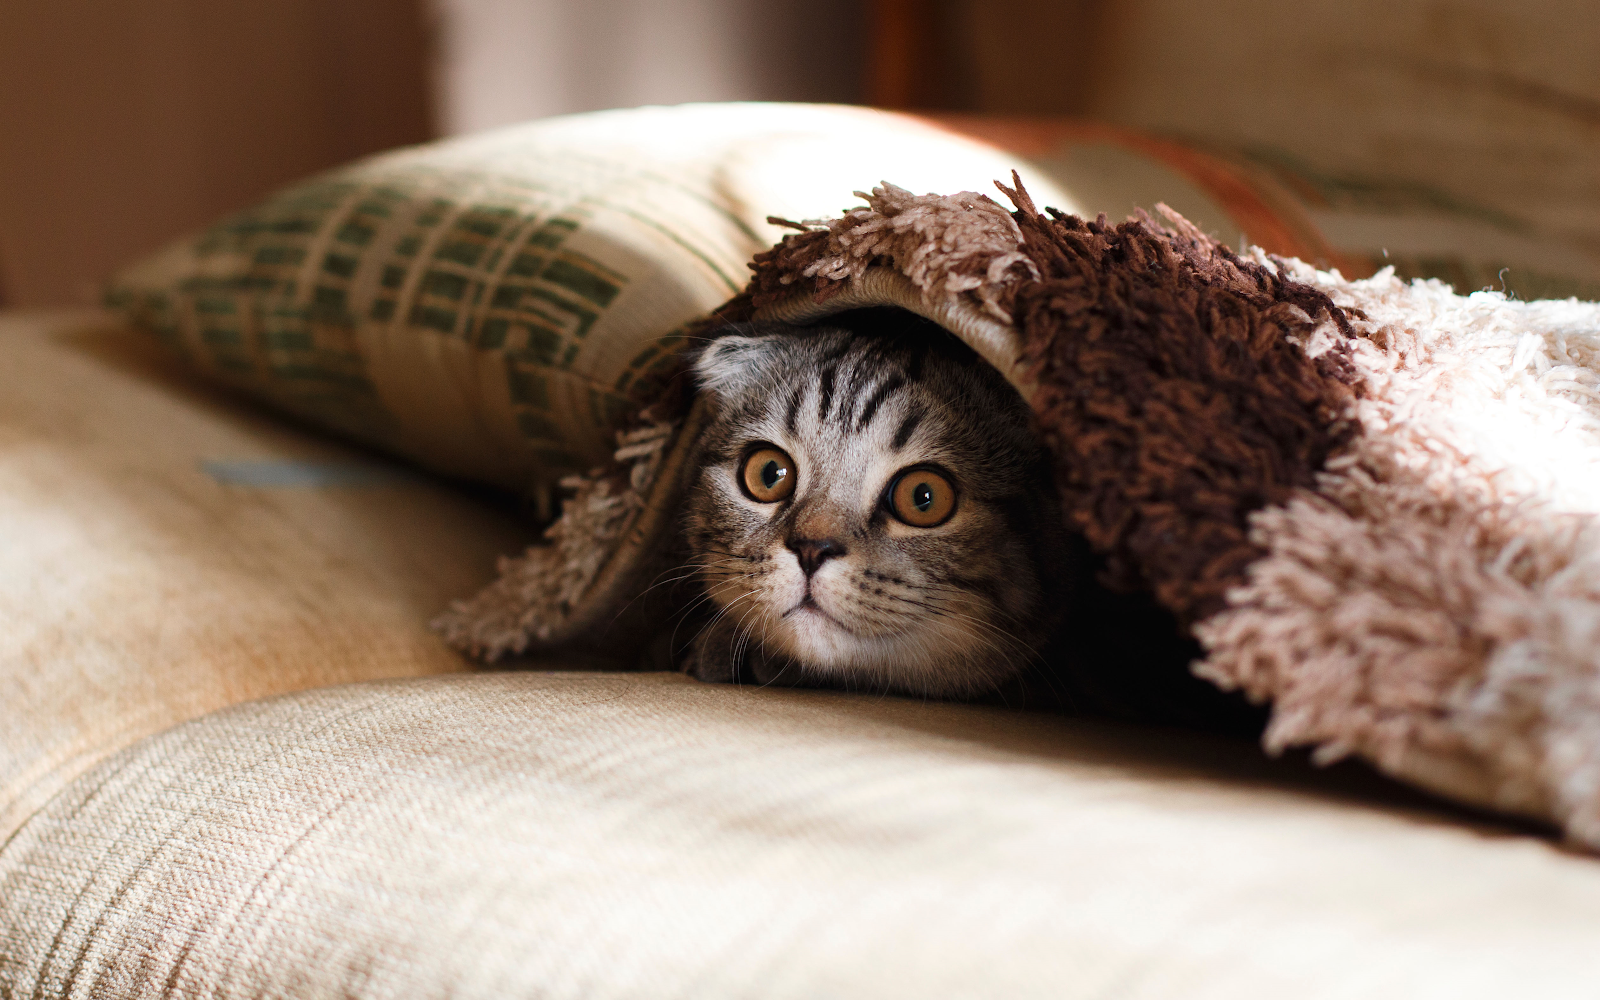 cat peeking out from under rug